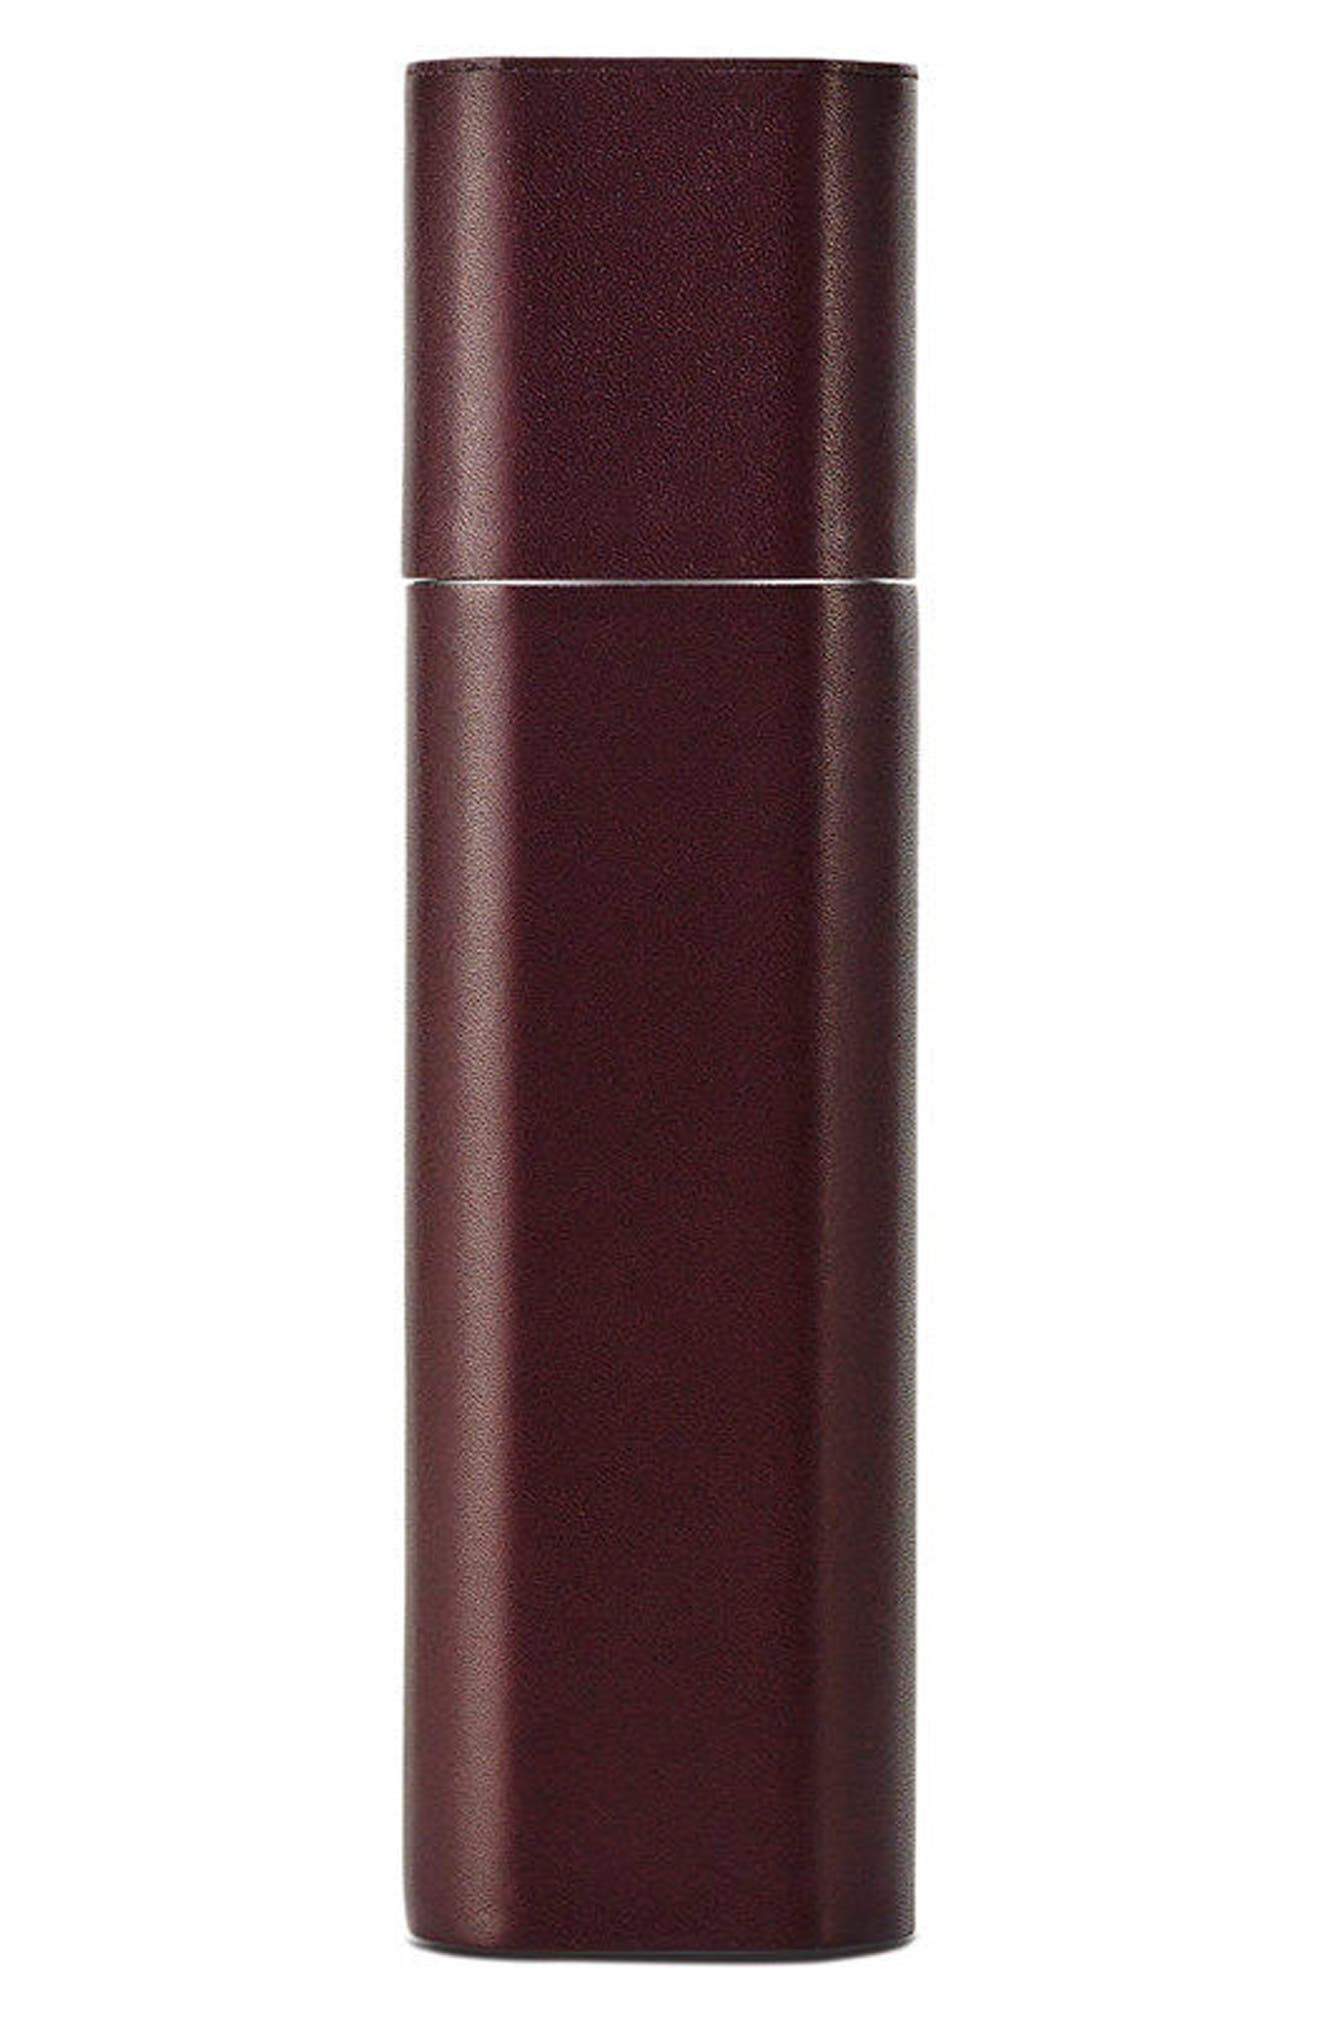 Main Image - BYREDO Nécessaire de Voyage Leather Travel Case in Burgundy